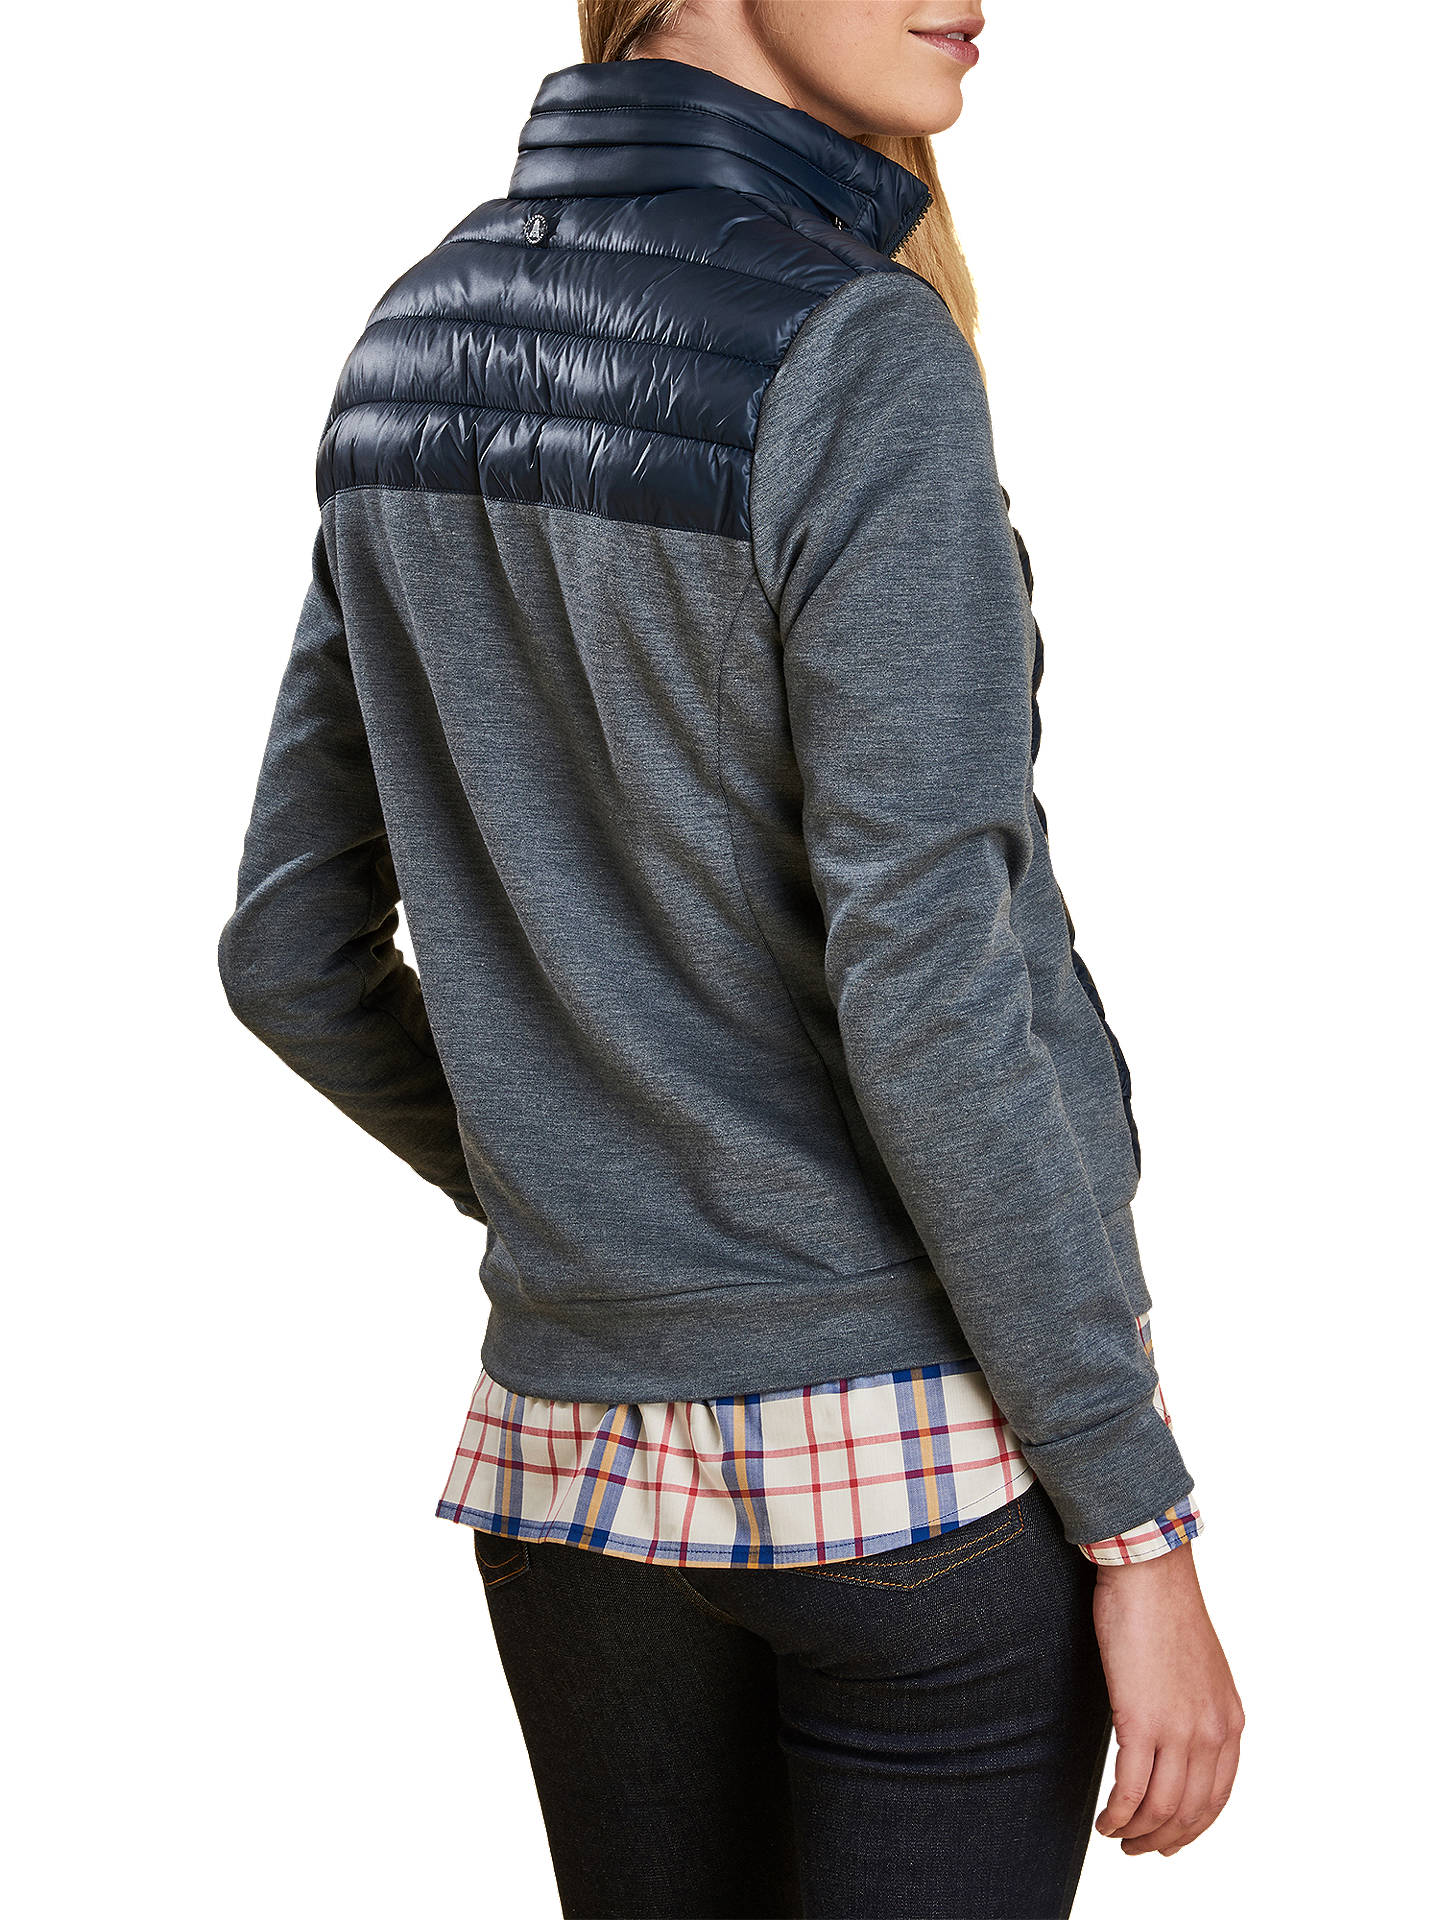 BuyBarbour Exmouth Zip Through Quilt Top, Navy, 8 Online at johnlewis.com